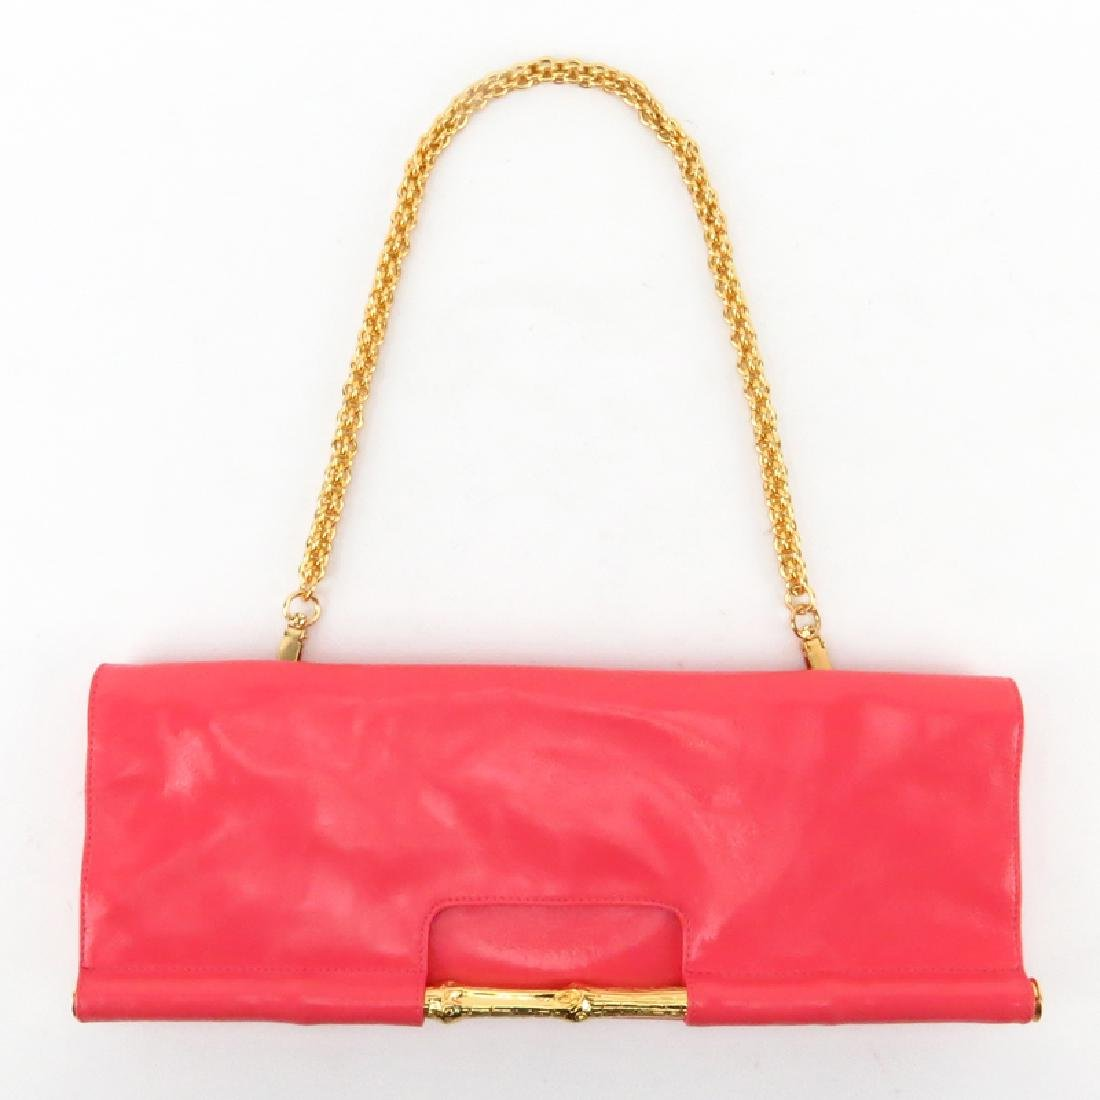 Trina Turk Salmon Pink Patent Leather Clutch